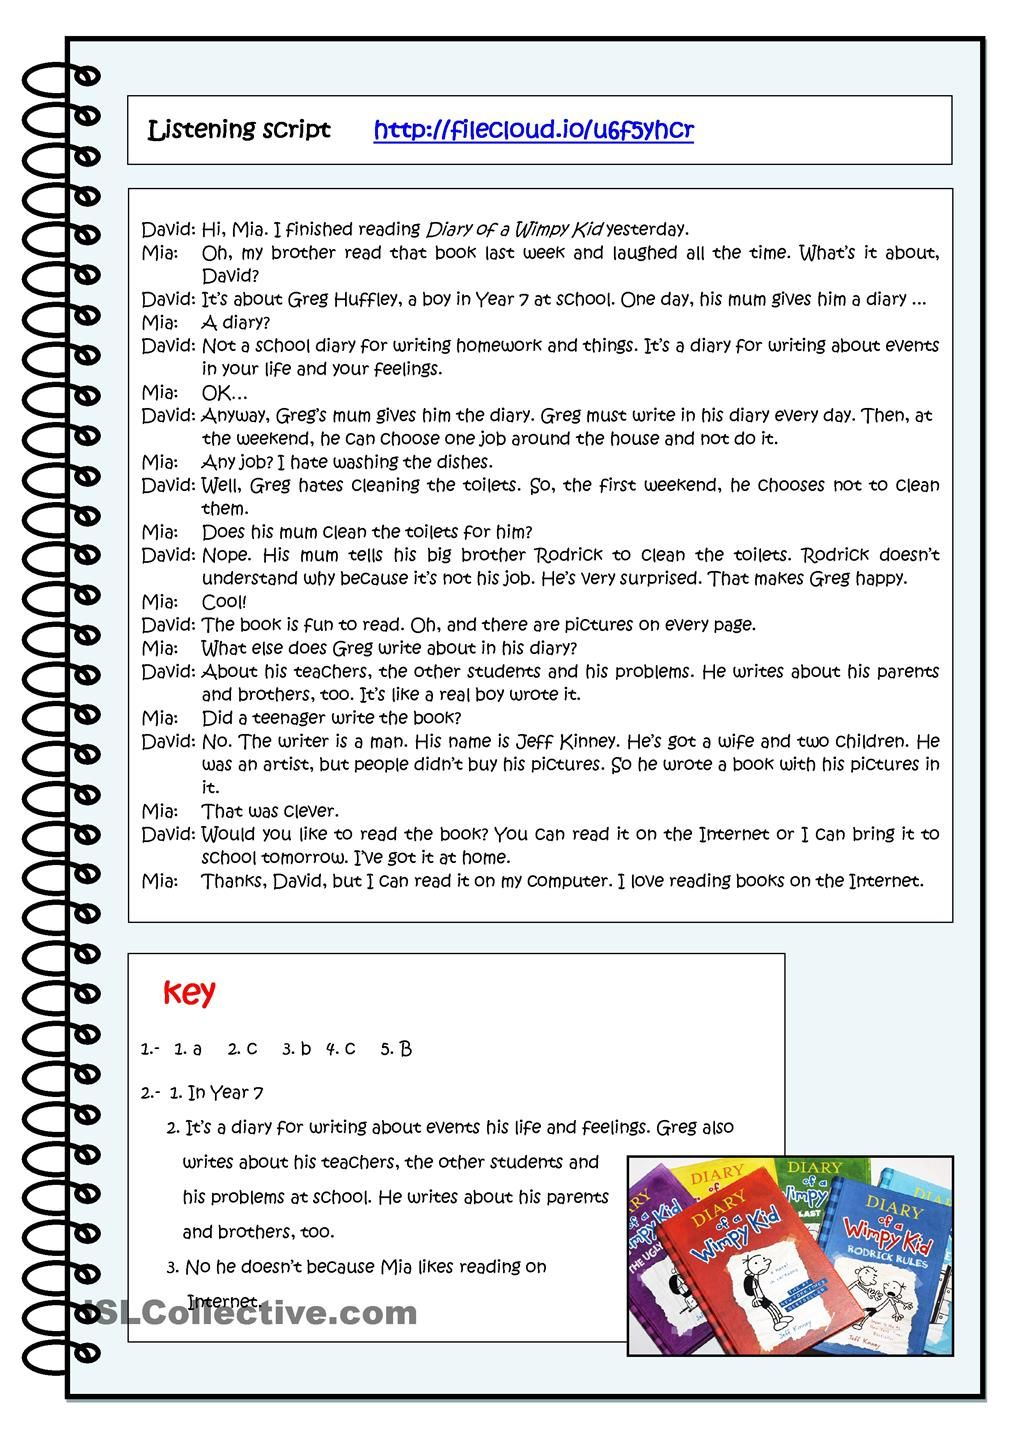 DIARY OF A WIMPY KID-worksheet2   Teaching materials   Pinterest